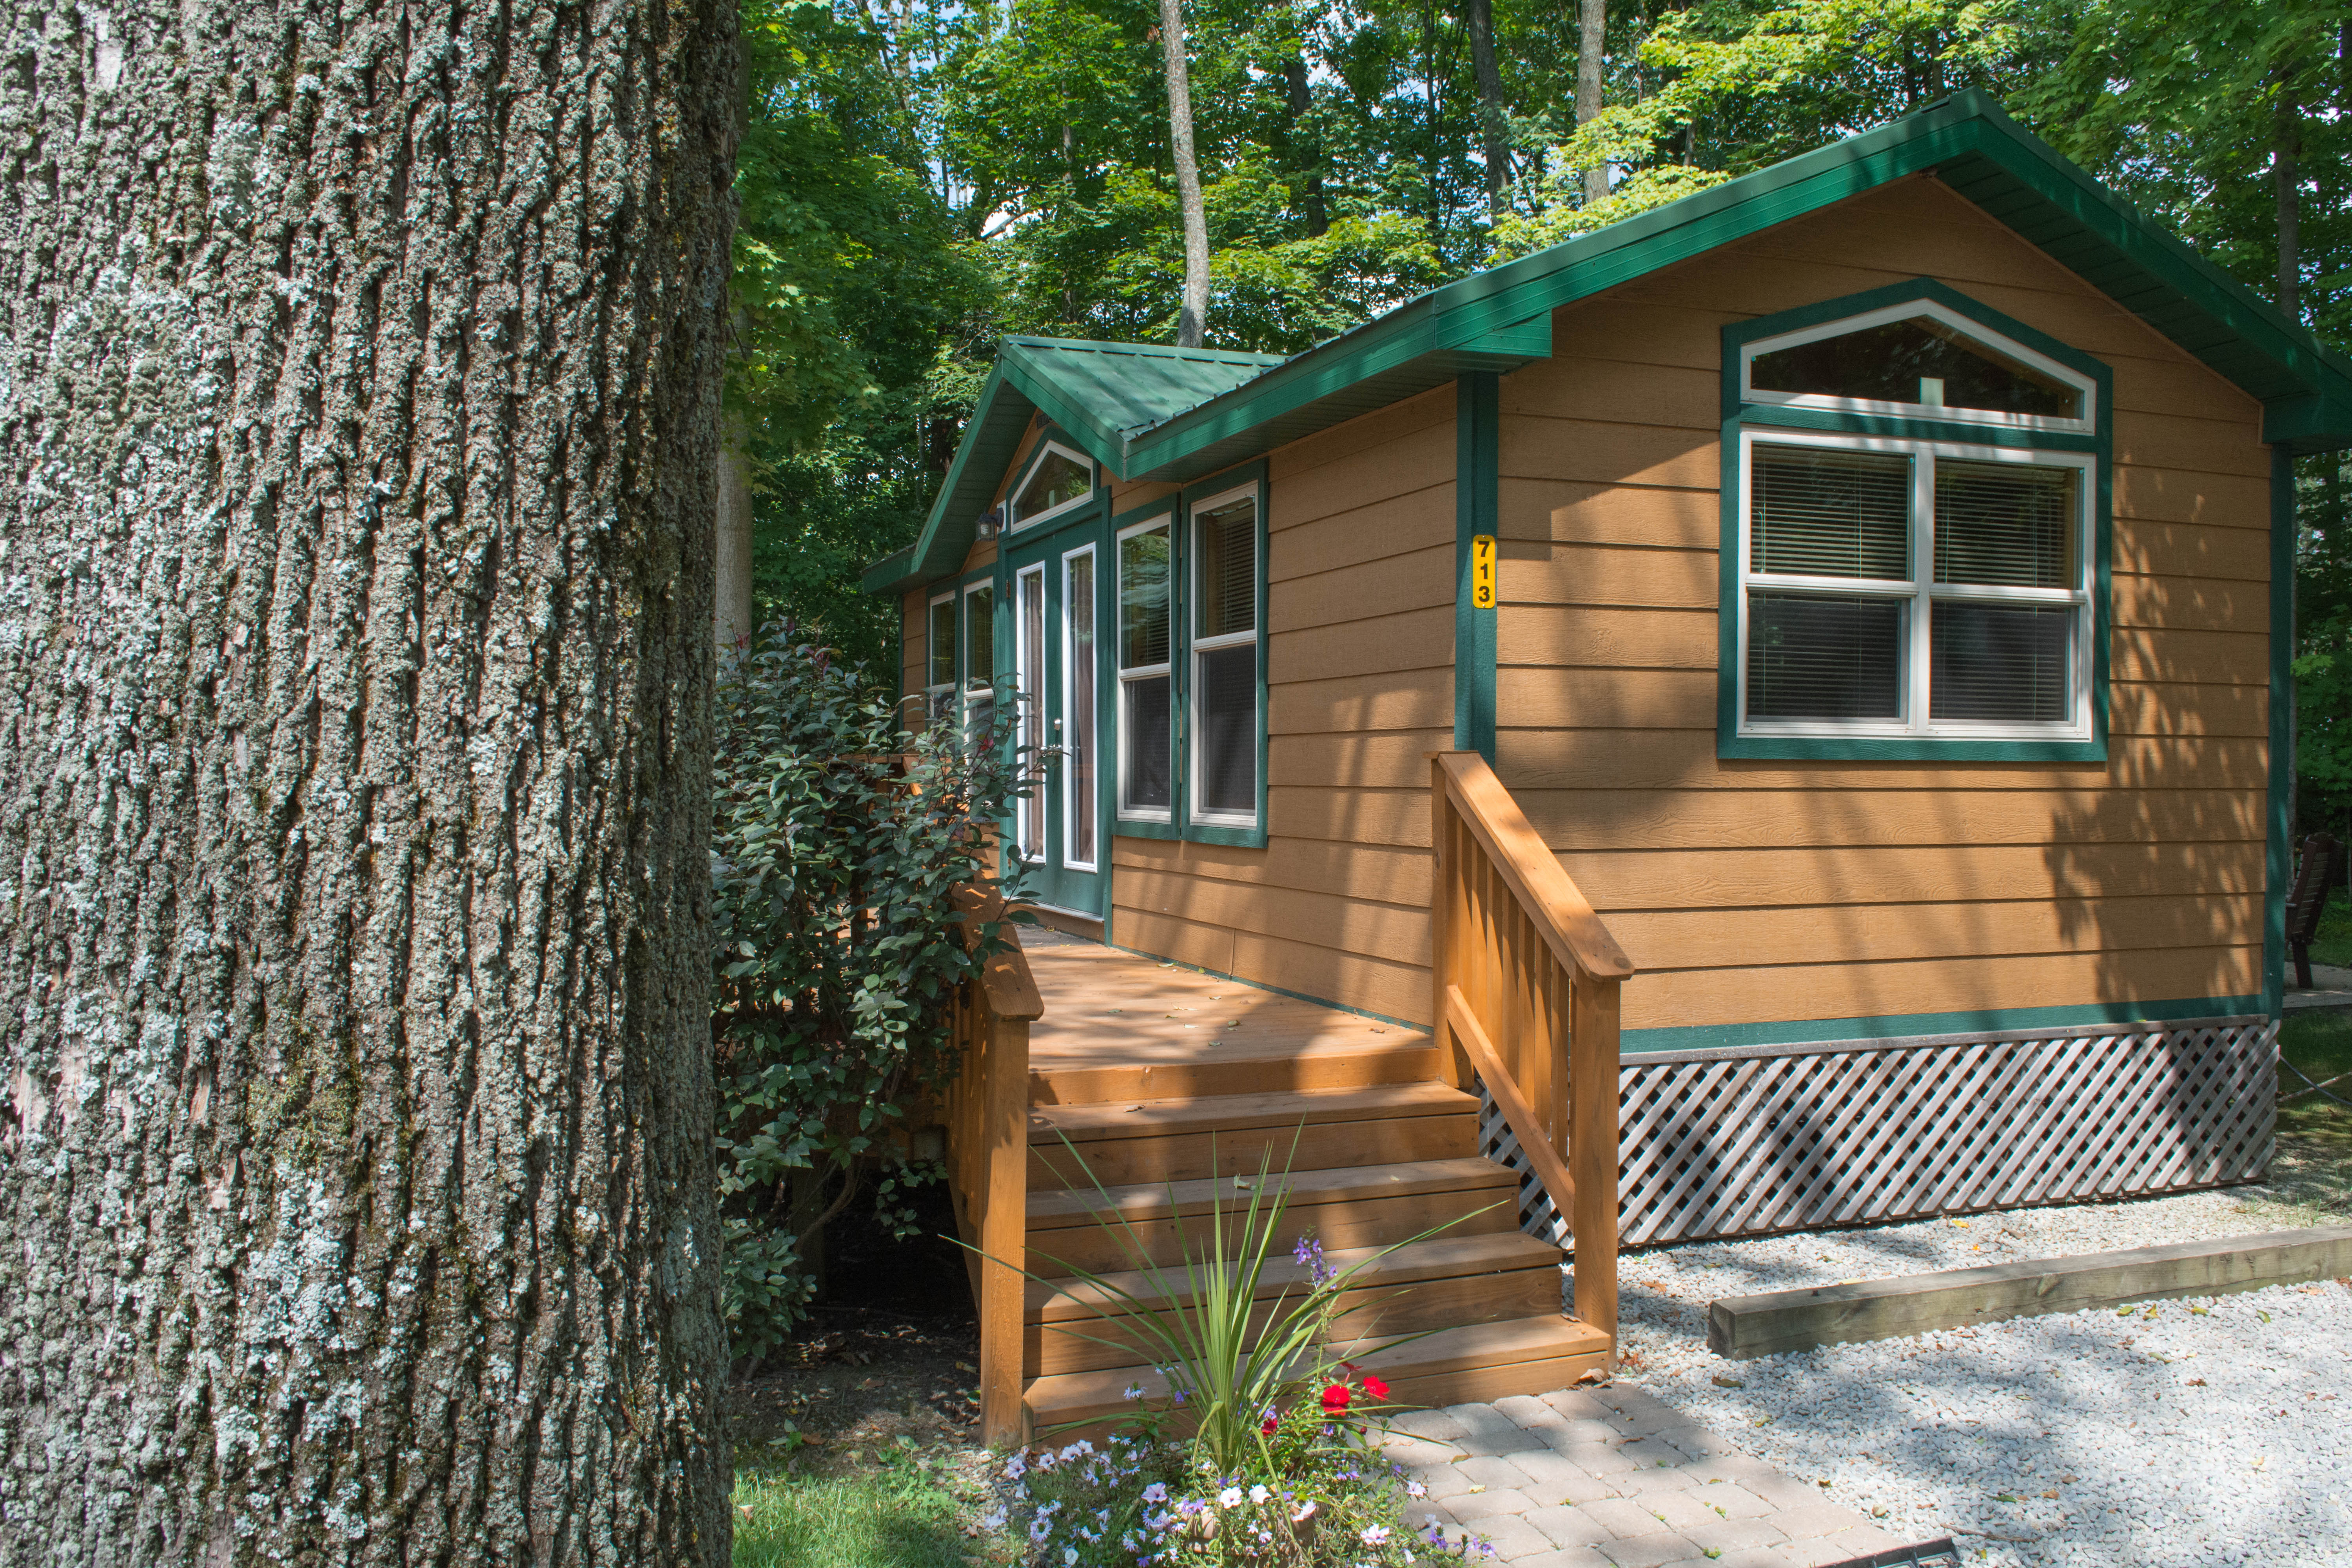 com cabin vacation hemlock fall in at rentals haven tophillcabins cabins ohio